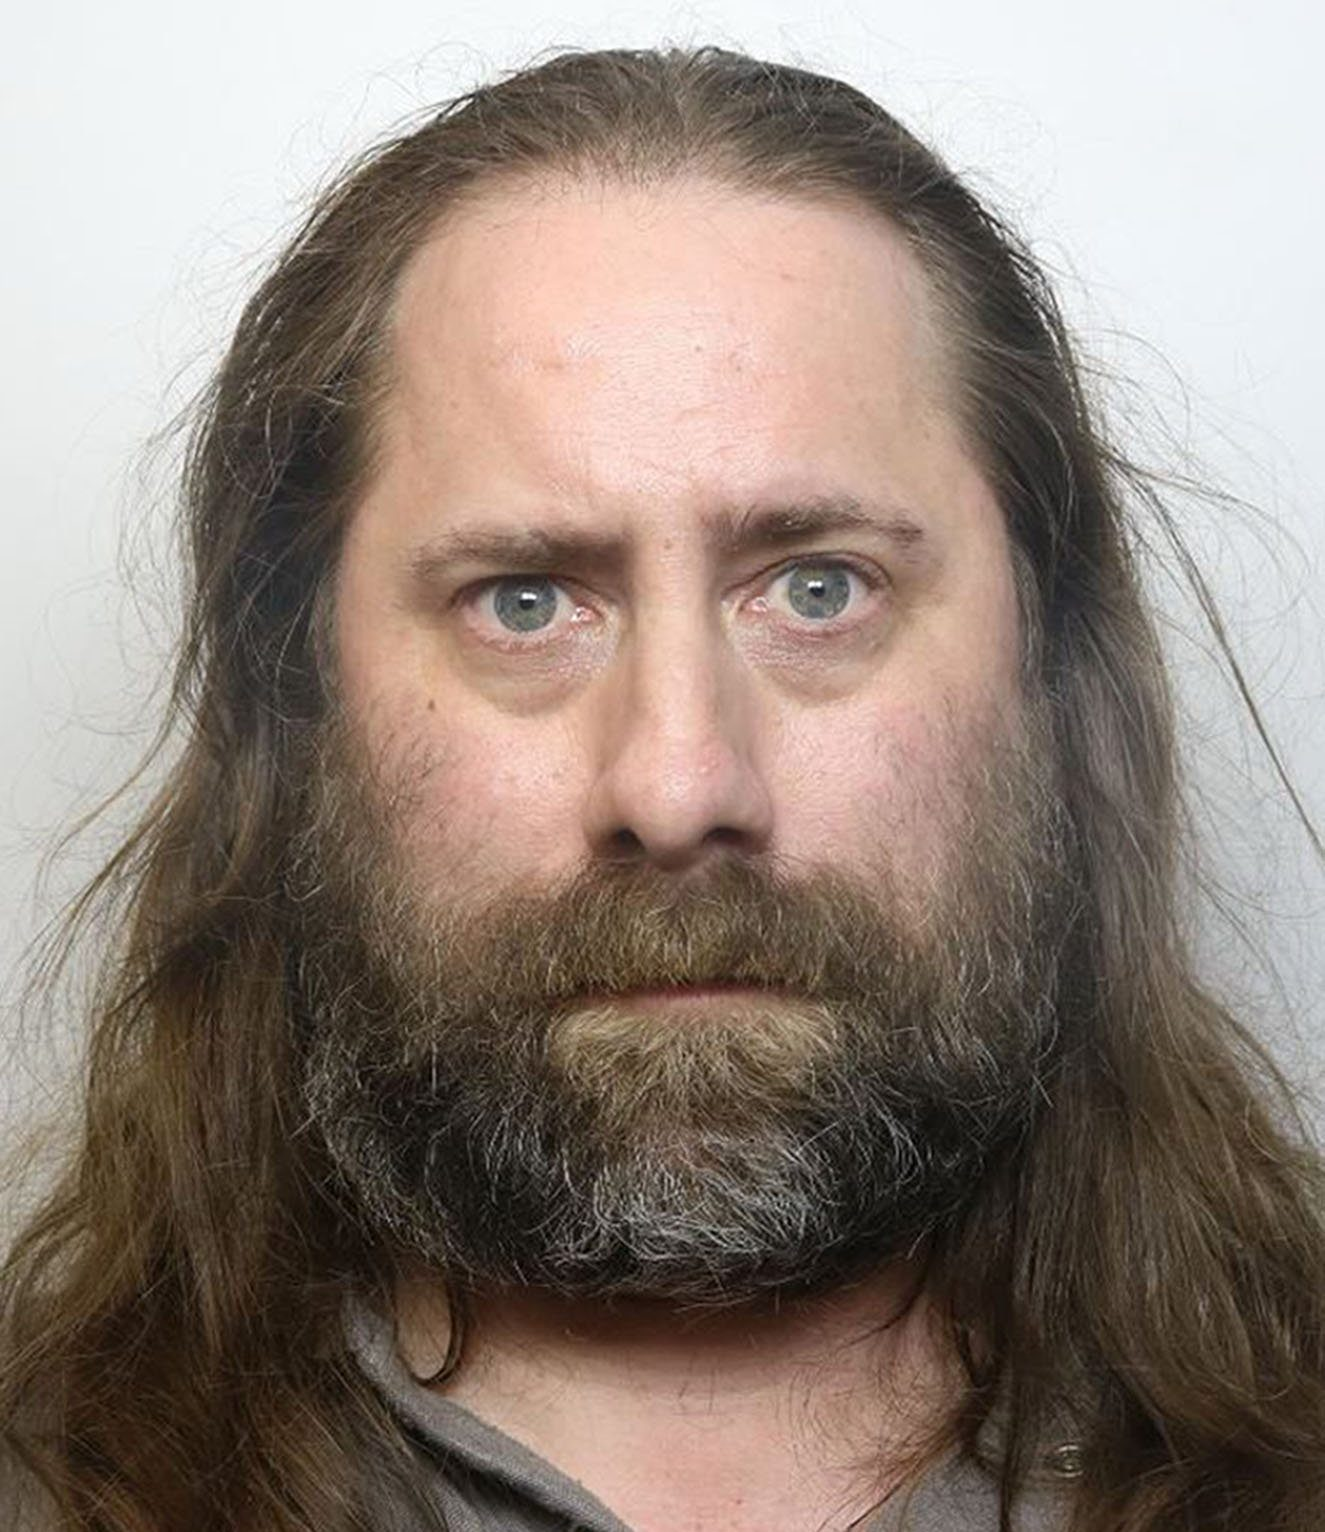 """Derbyshire Police undated handout photo of rapist Anthony Dealey who has been jailed for life with a minimum term of 13-and-a-half years at Derby Crown Court after he tried to kill his victim during a """"brutal and inhumane"""" late-night street attack. PRESS ASSOCIATION Photo. Issue date: Friday December 7, 2018. Dealey, an apparently happily-married father-of-two, was also ordered to register as a sex offender for life after leaving a woman aged in her 30s for dead. Dealey, 43,was jailed on charges of rape, robbery, sexual assault and the attempted murder of the woman, who he did not know. See PA story COURTS Ilkeston. Photo credit should read: Derbyshire Police/PA Wire NOTE TO EDITORS: This handout photo may only be used in for editorial reporting purposes for the contemporaneous illustration of events, things or the people in the image or facts mentioned in the caption. Reuse of the picture may require further permission from the copyright holder."""